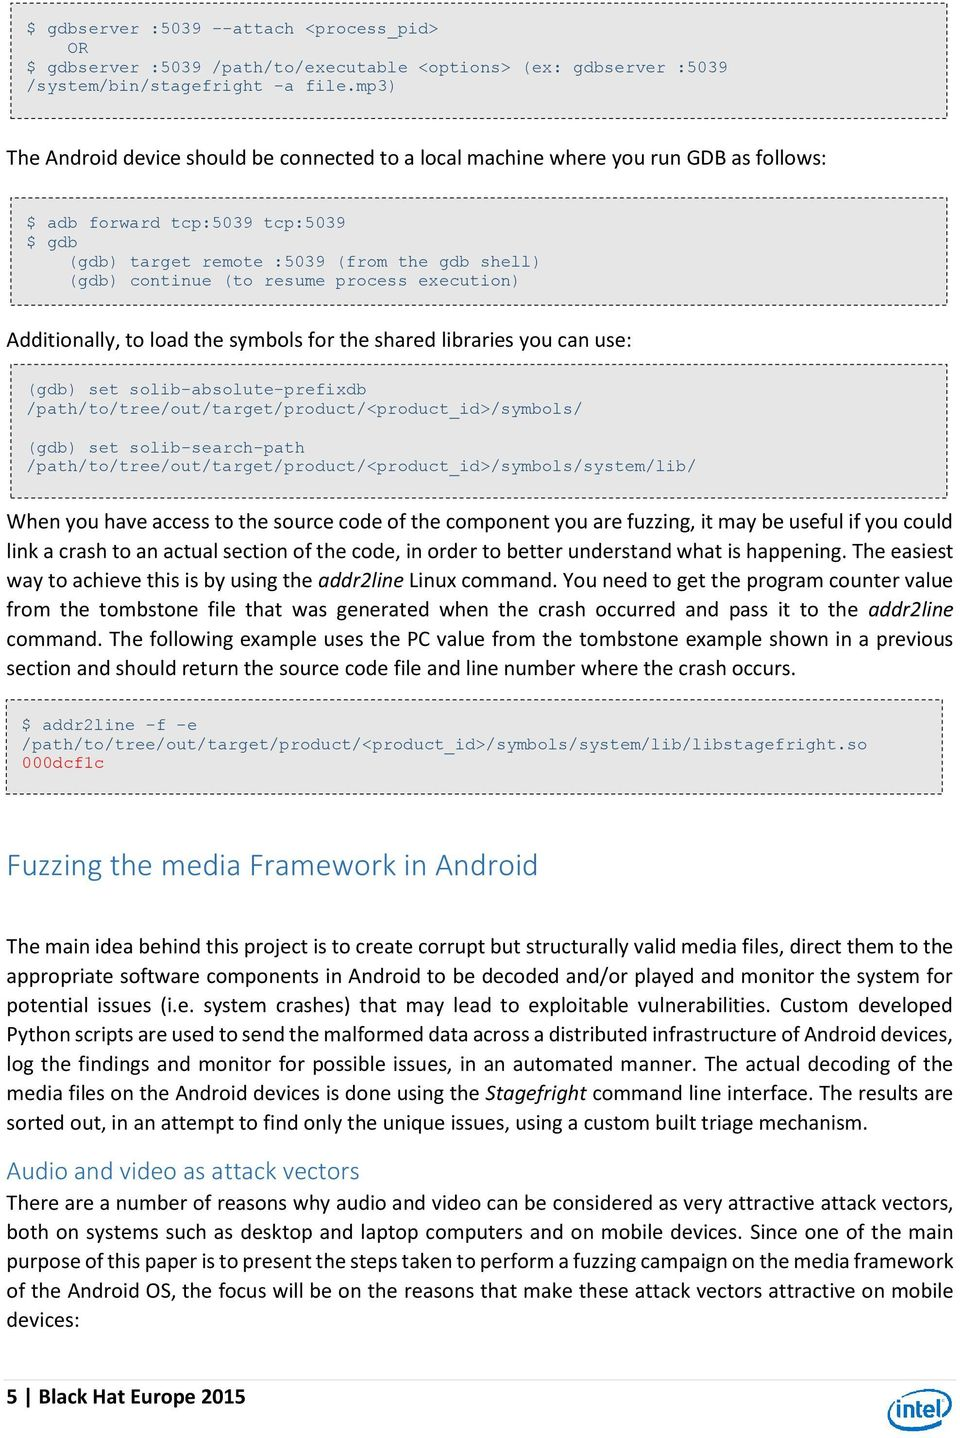 Fuzzing Android: a recipe for uncovering vulnerabilities inside